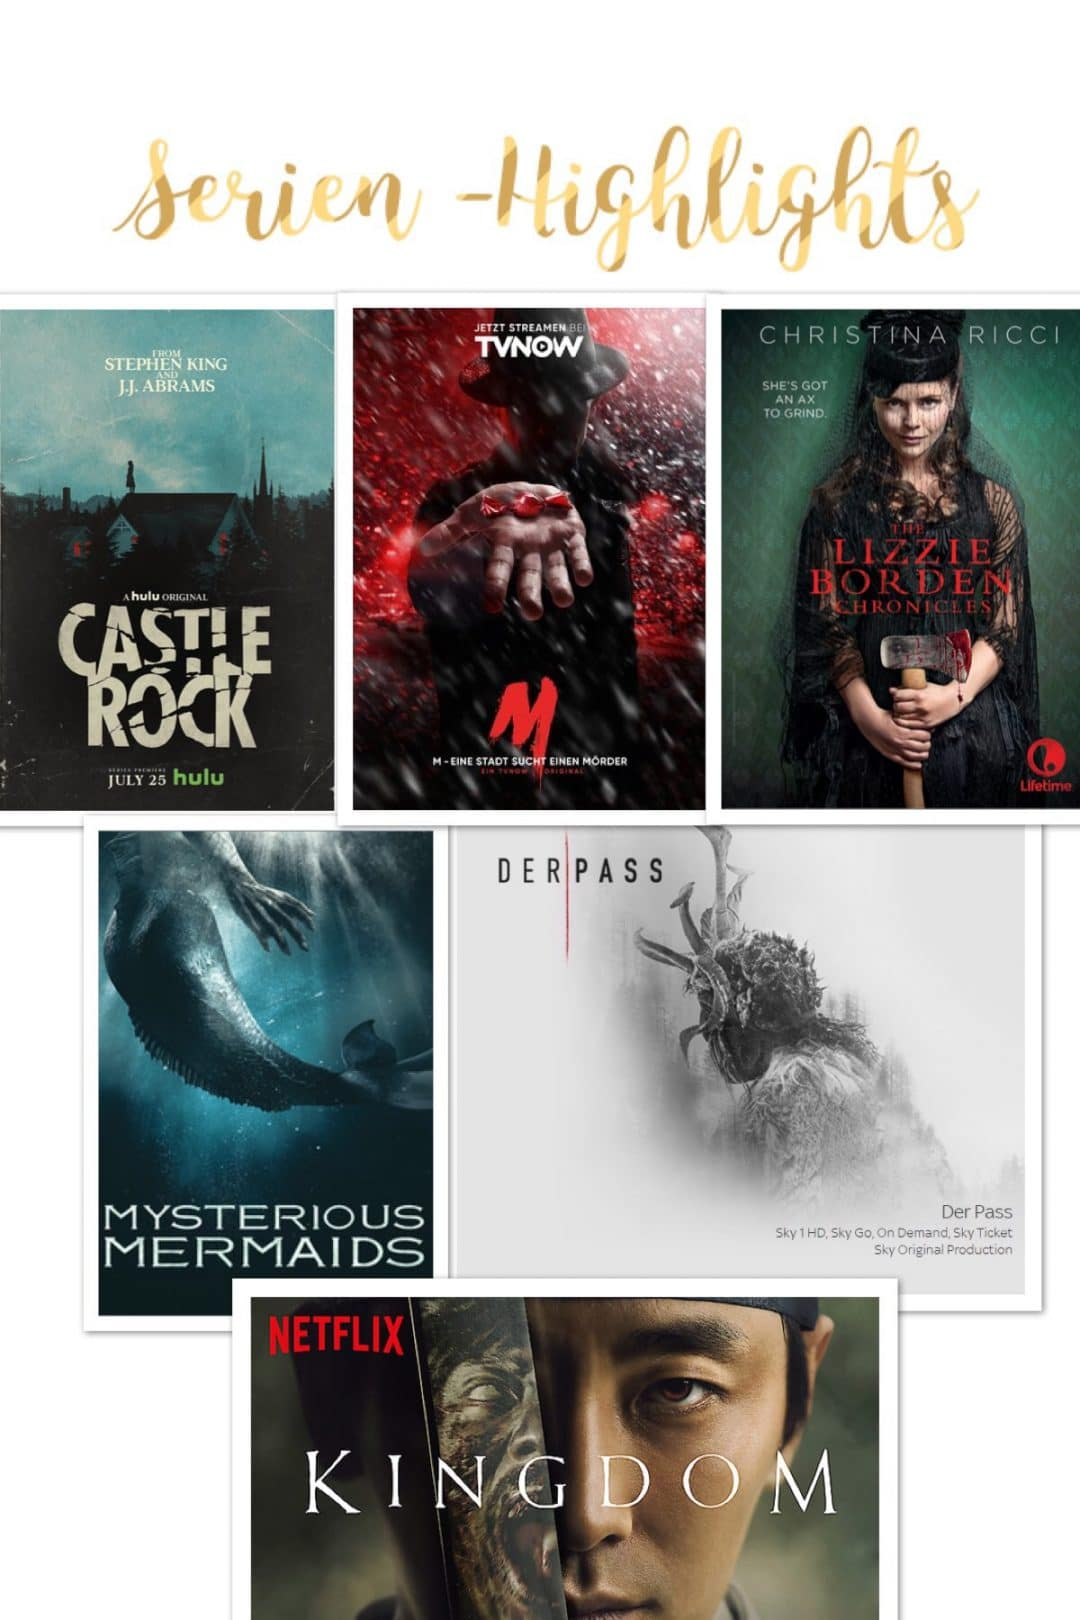 Serien-Highlights von Netflix